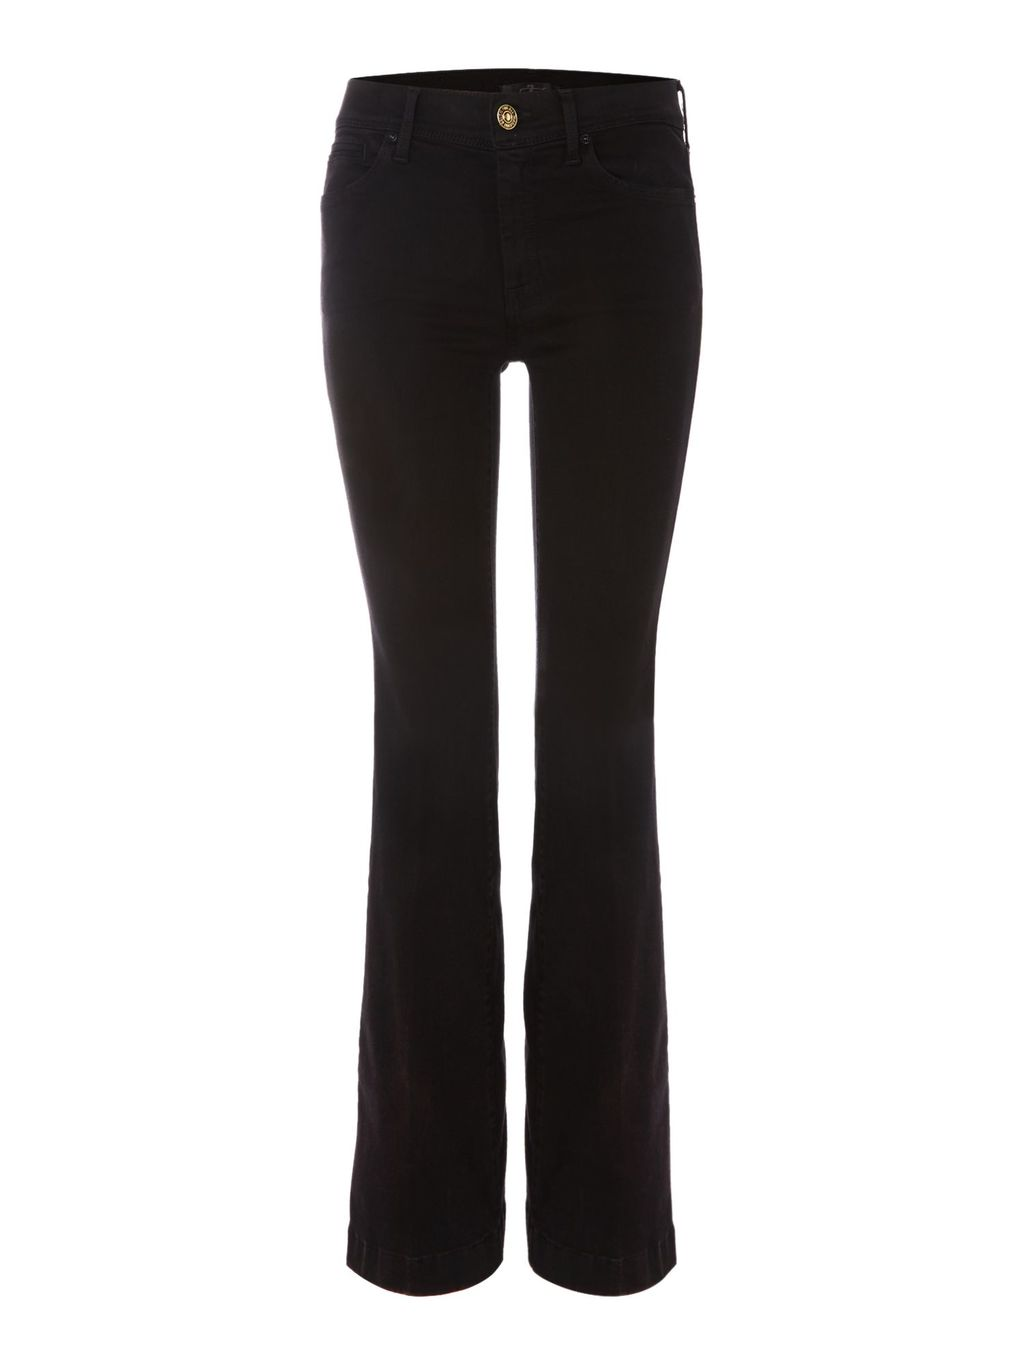 Charlize Tailorless Slim Flare Jean In Black, Black - style: flares; length: standard; pattern: plain; pocket detail: traditional 5 pocket; waist: mid/regular rise; predominant colour: black; occasions: casual, creative work; fibres: cotton - stretch; texture group: denim; pattern type: fabric; season: s/s 2016; wardrobe: basic